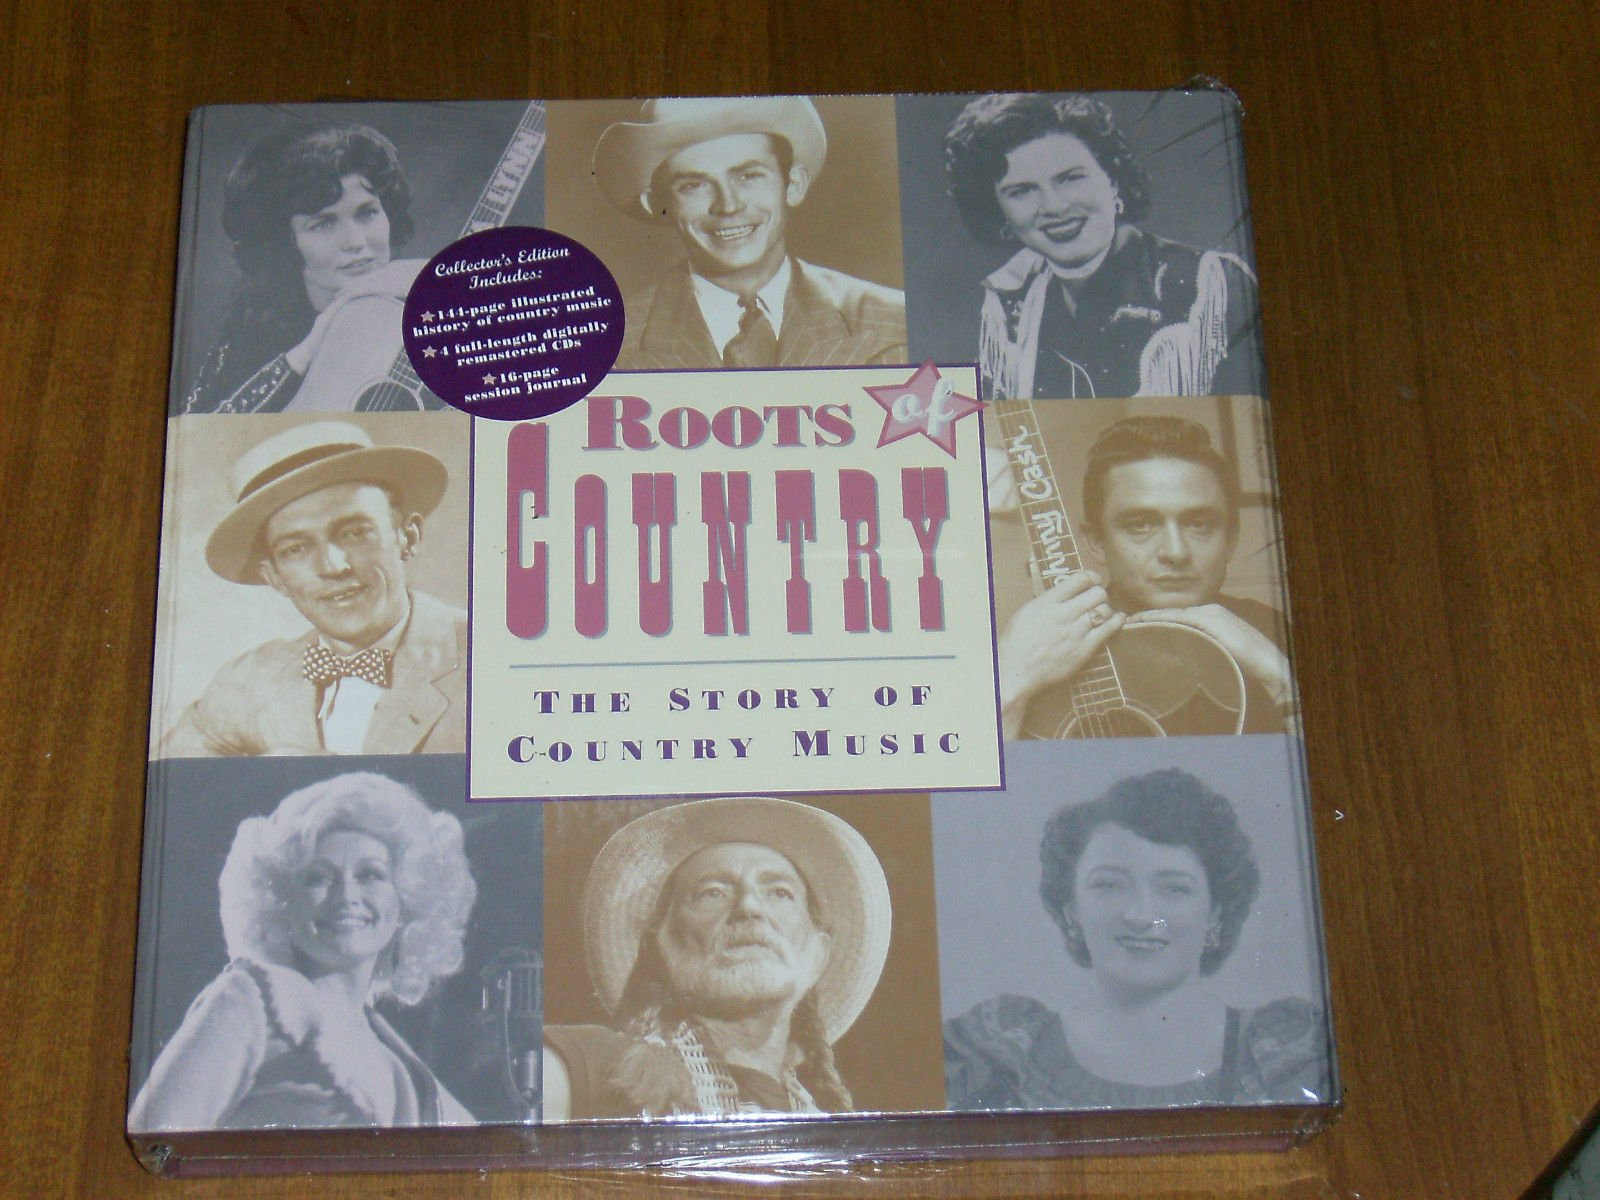 Roots of Country: The Story of Country Music